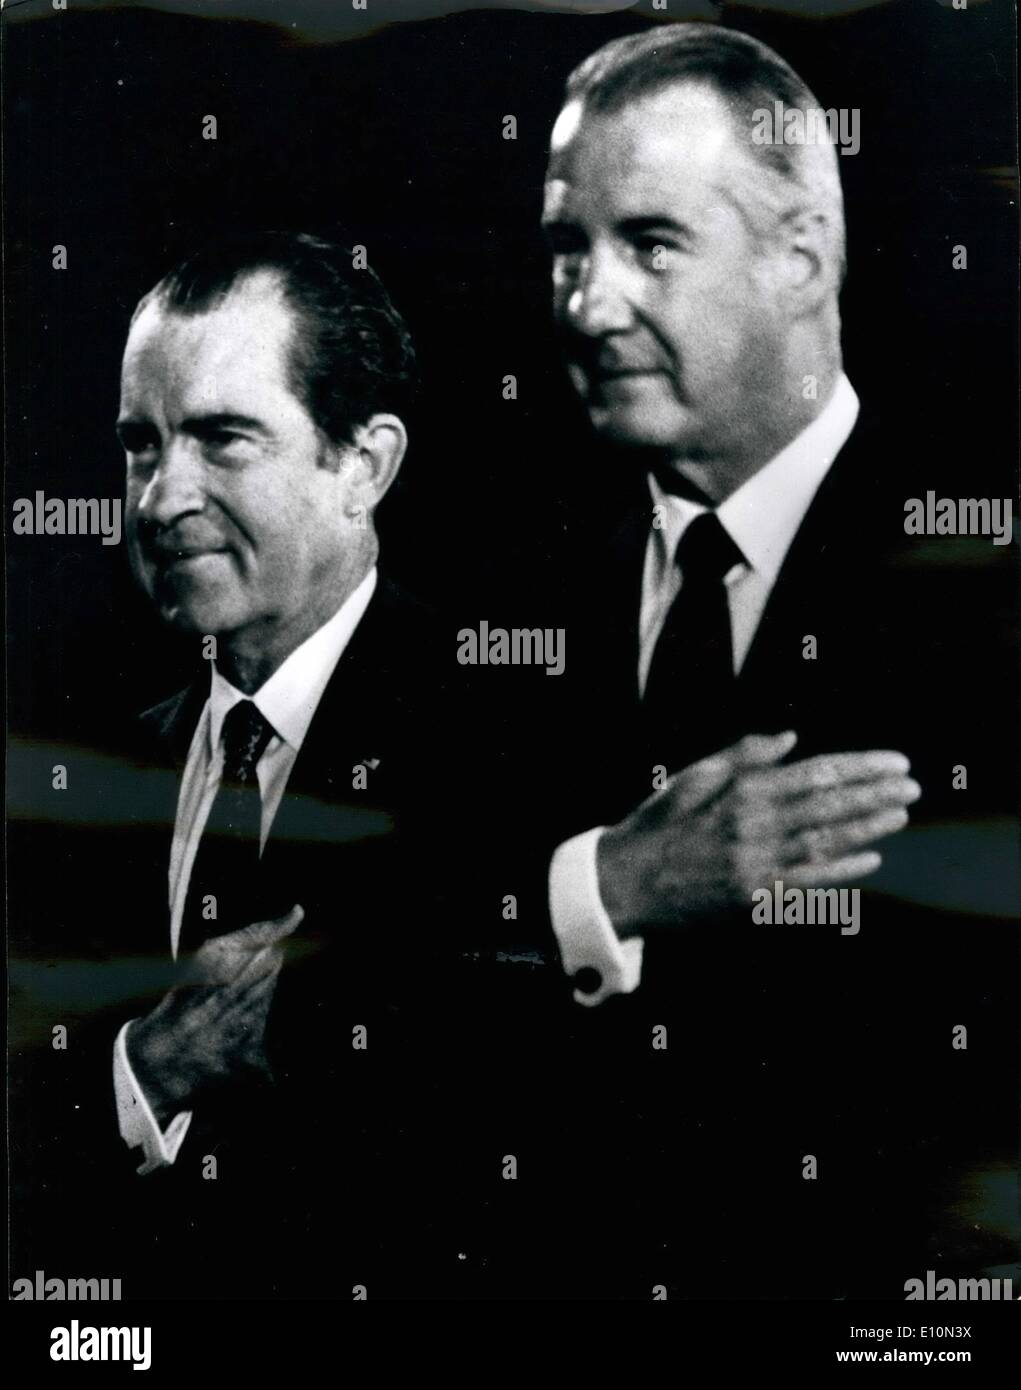 Aug. 08, 1973 - Cross My Heart, I'M Innocent. Spiro Agnew Sensation: The American Vice-President Spiro Agnew, Like president Nixon is now i trouble, Spiro Agnew is under investigation for Possible criminal violatiuons. The wall Street Journal repaired today what the investigation involved allegations of Bribery extortion and tax fzaud. Picture Shows: Spiro Agnew (right) with President Nixon at a recent reception. - Stock Image